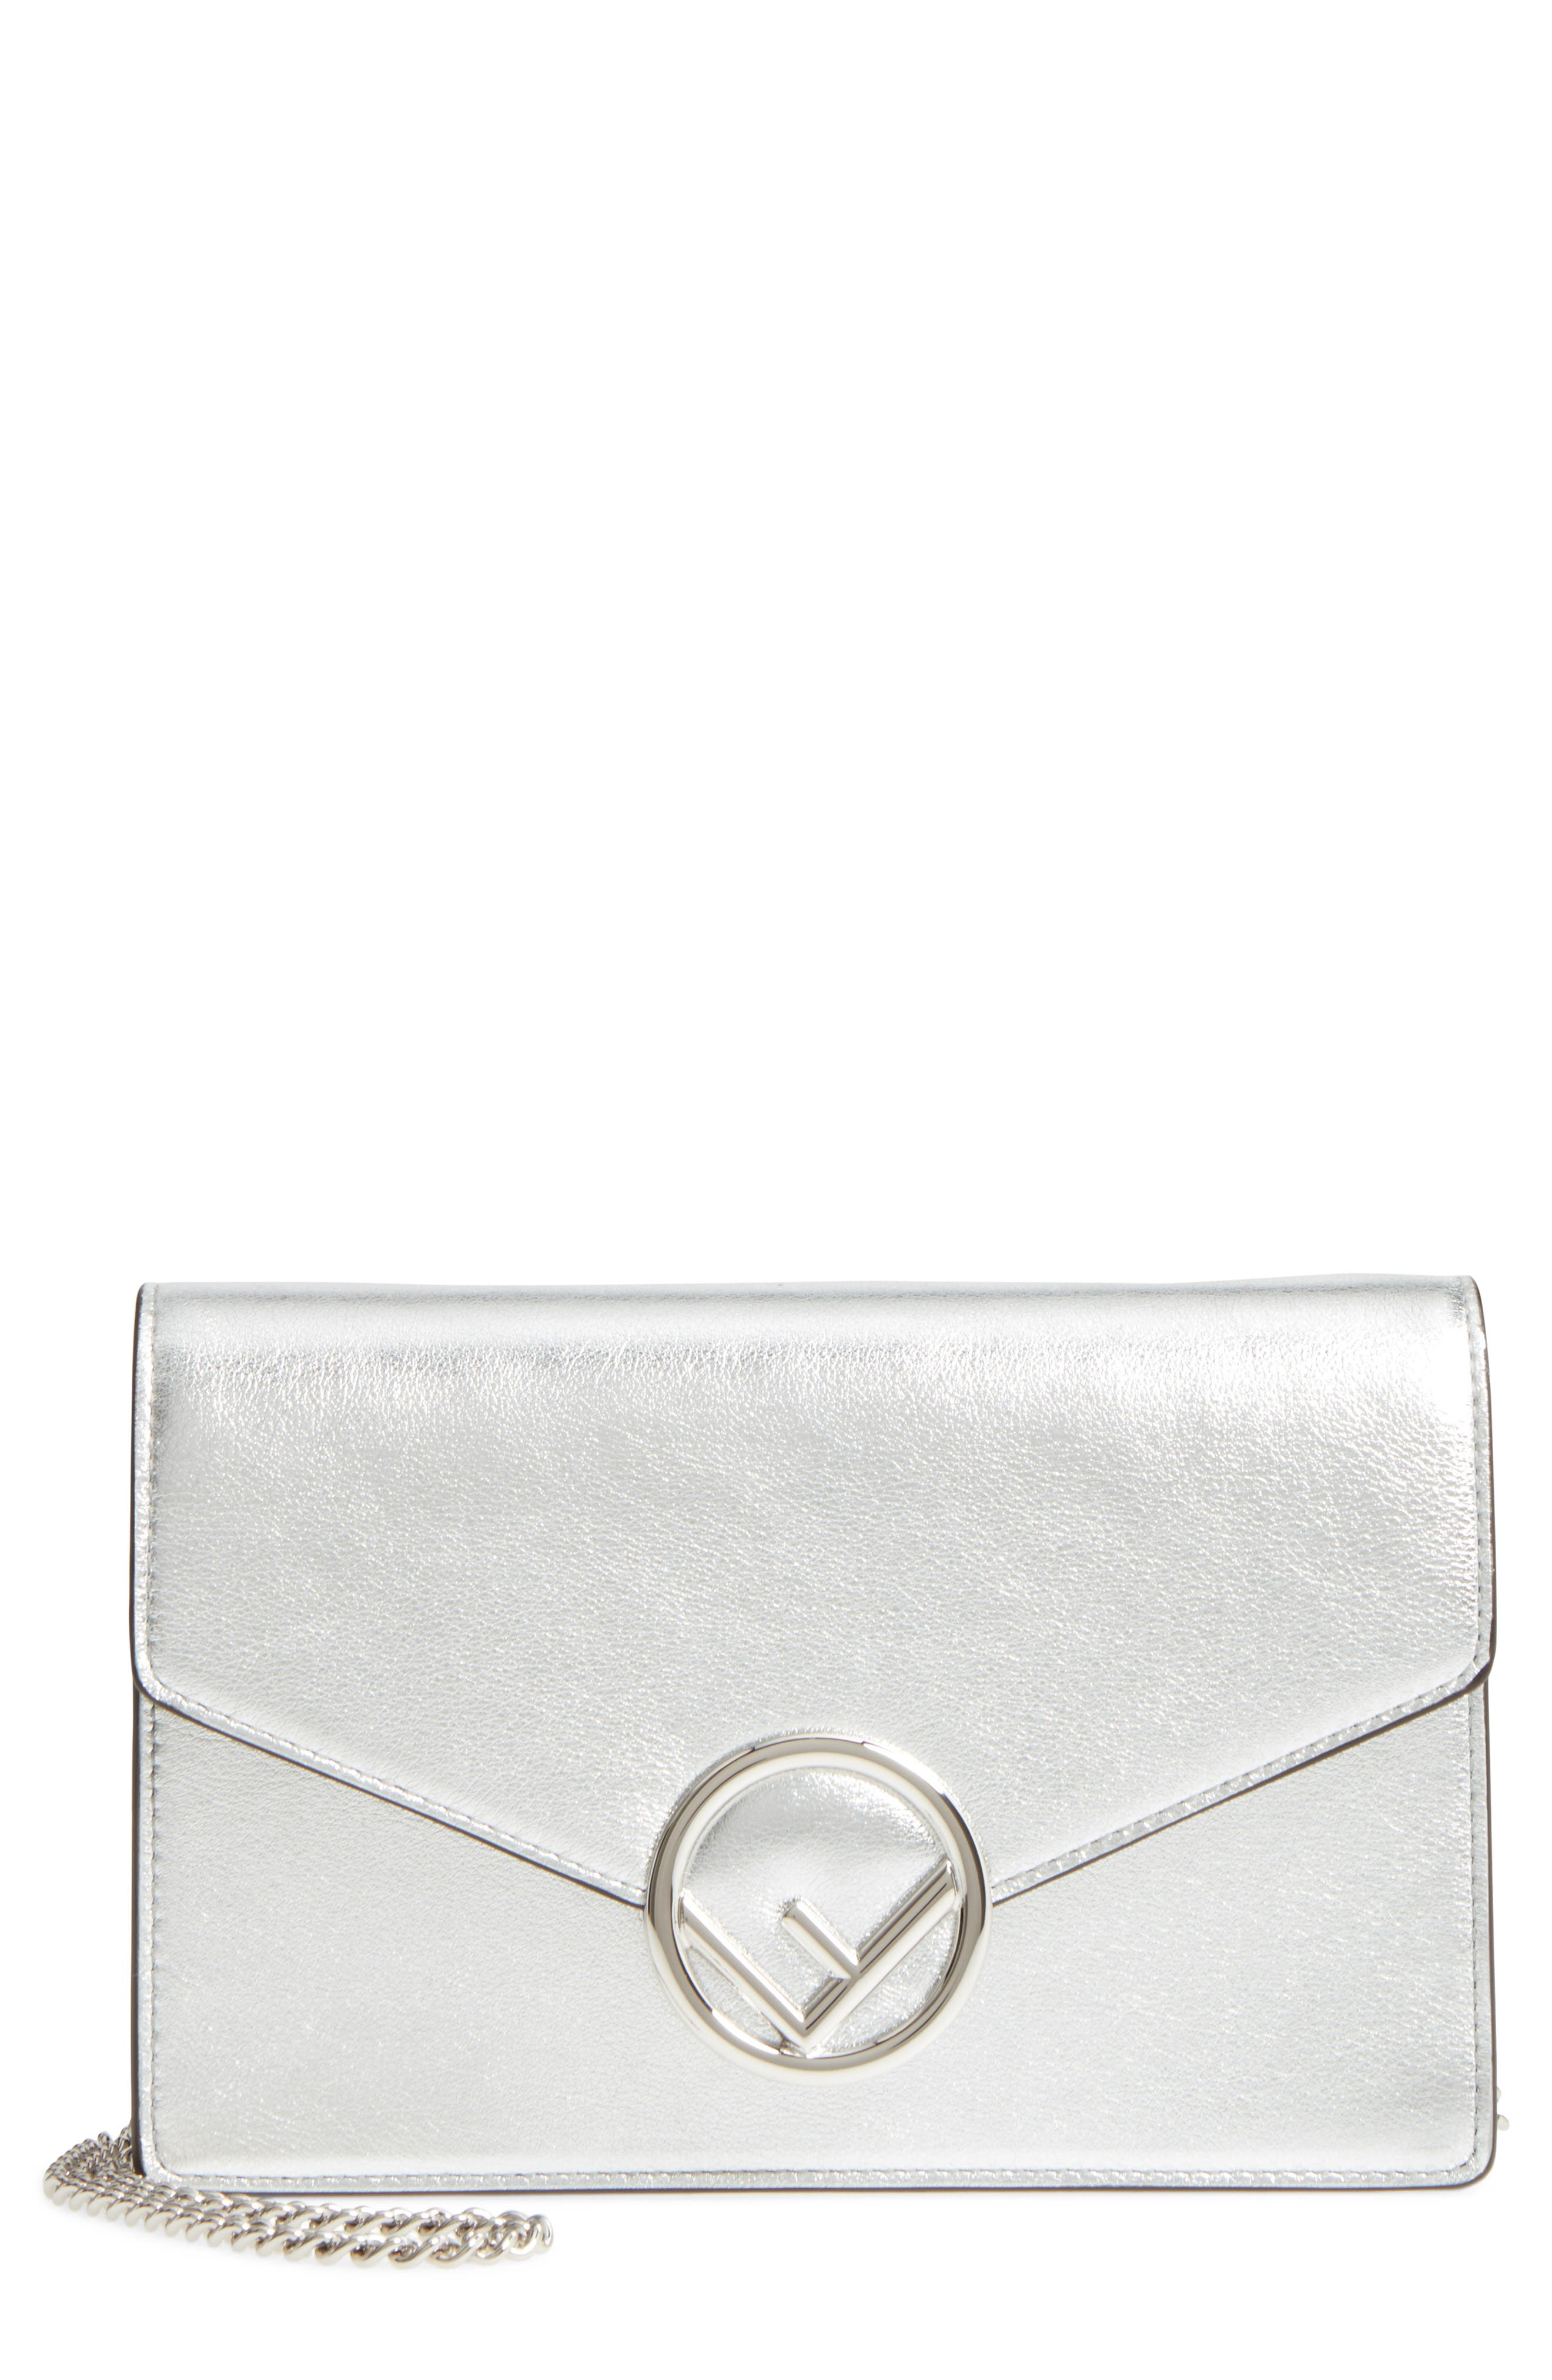 Alternate Image 1 Selected - Fendi Liberty Logo Calfskin Leather Wallet on a Chain